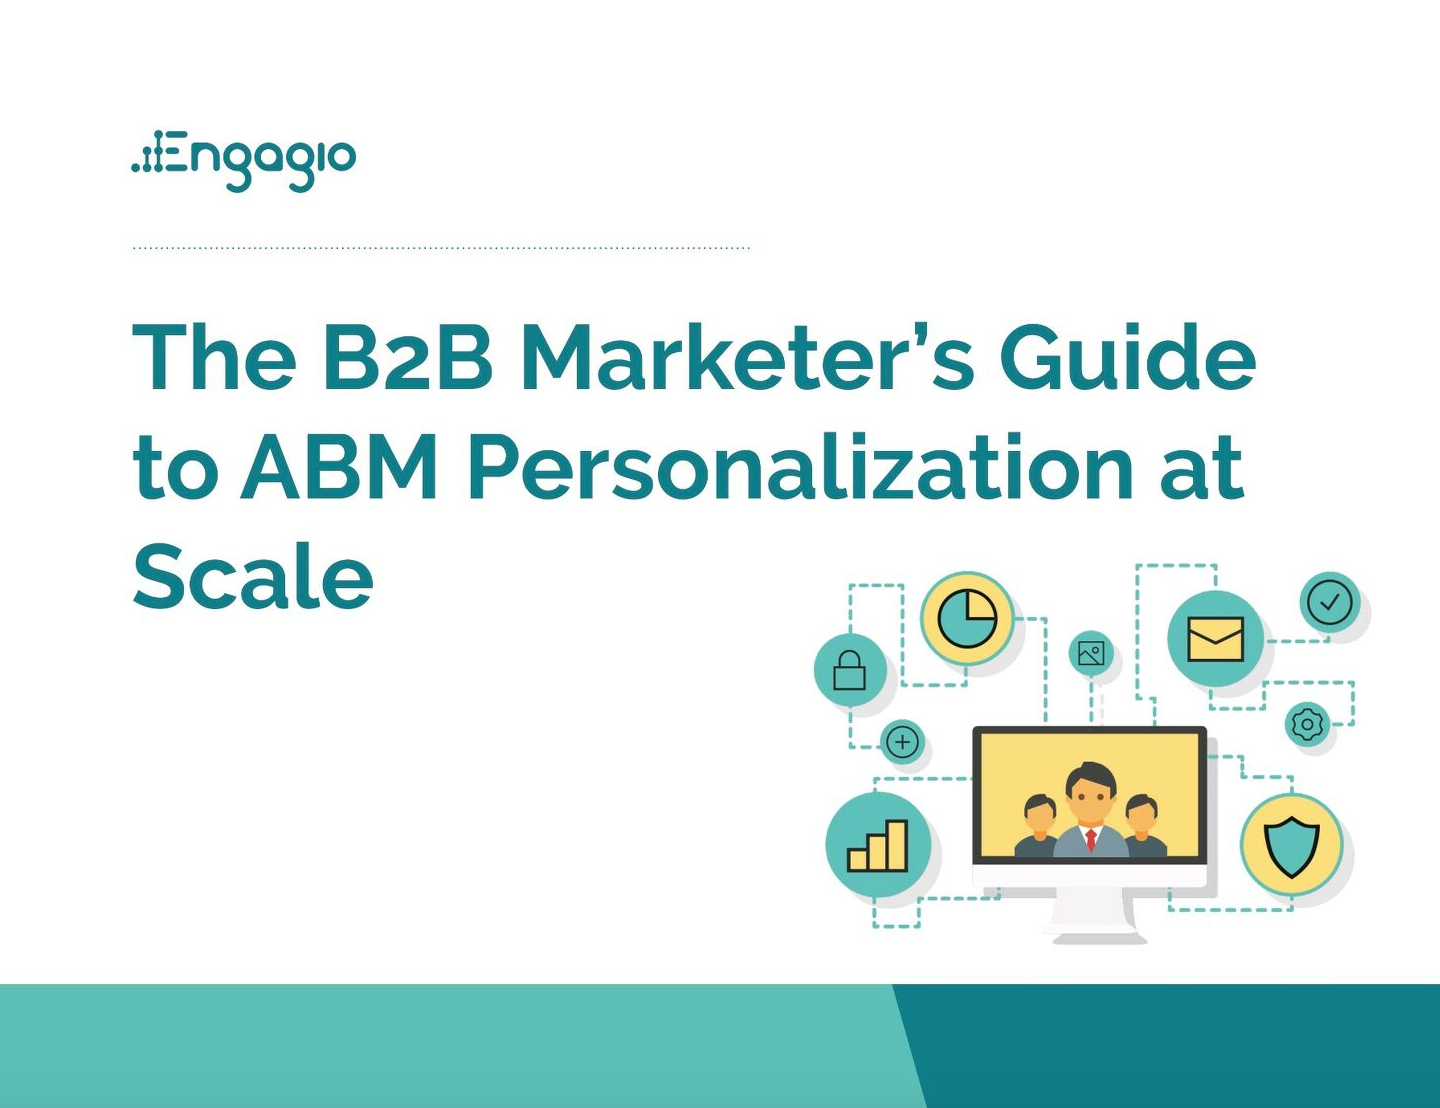 ABM Personalization at Scale